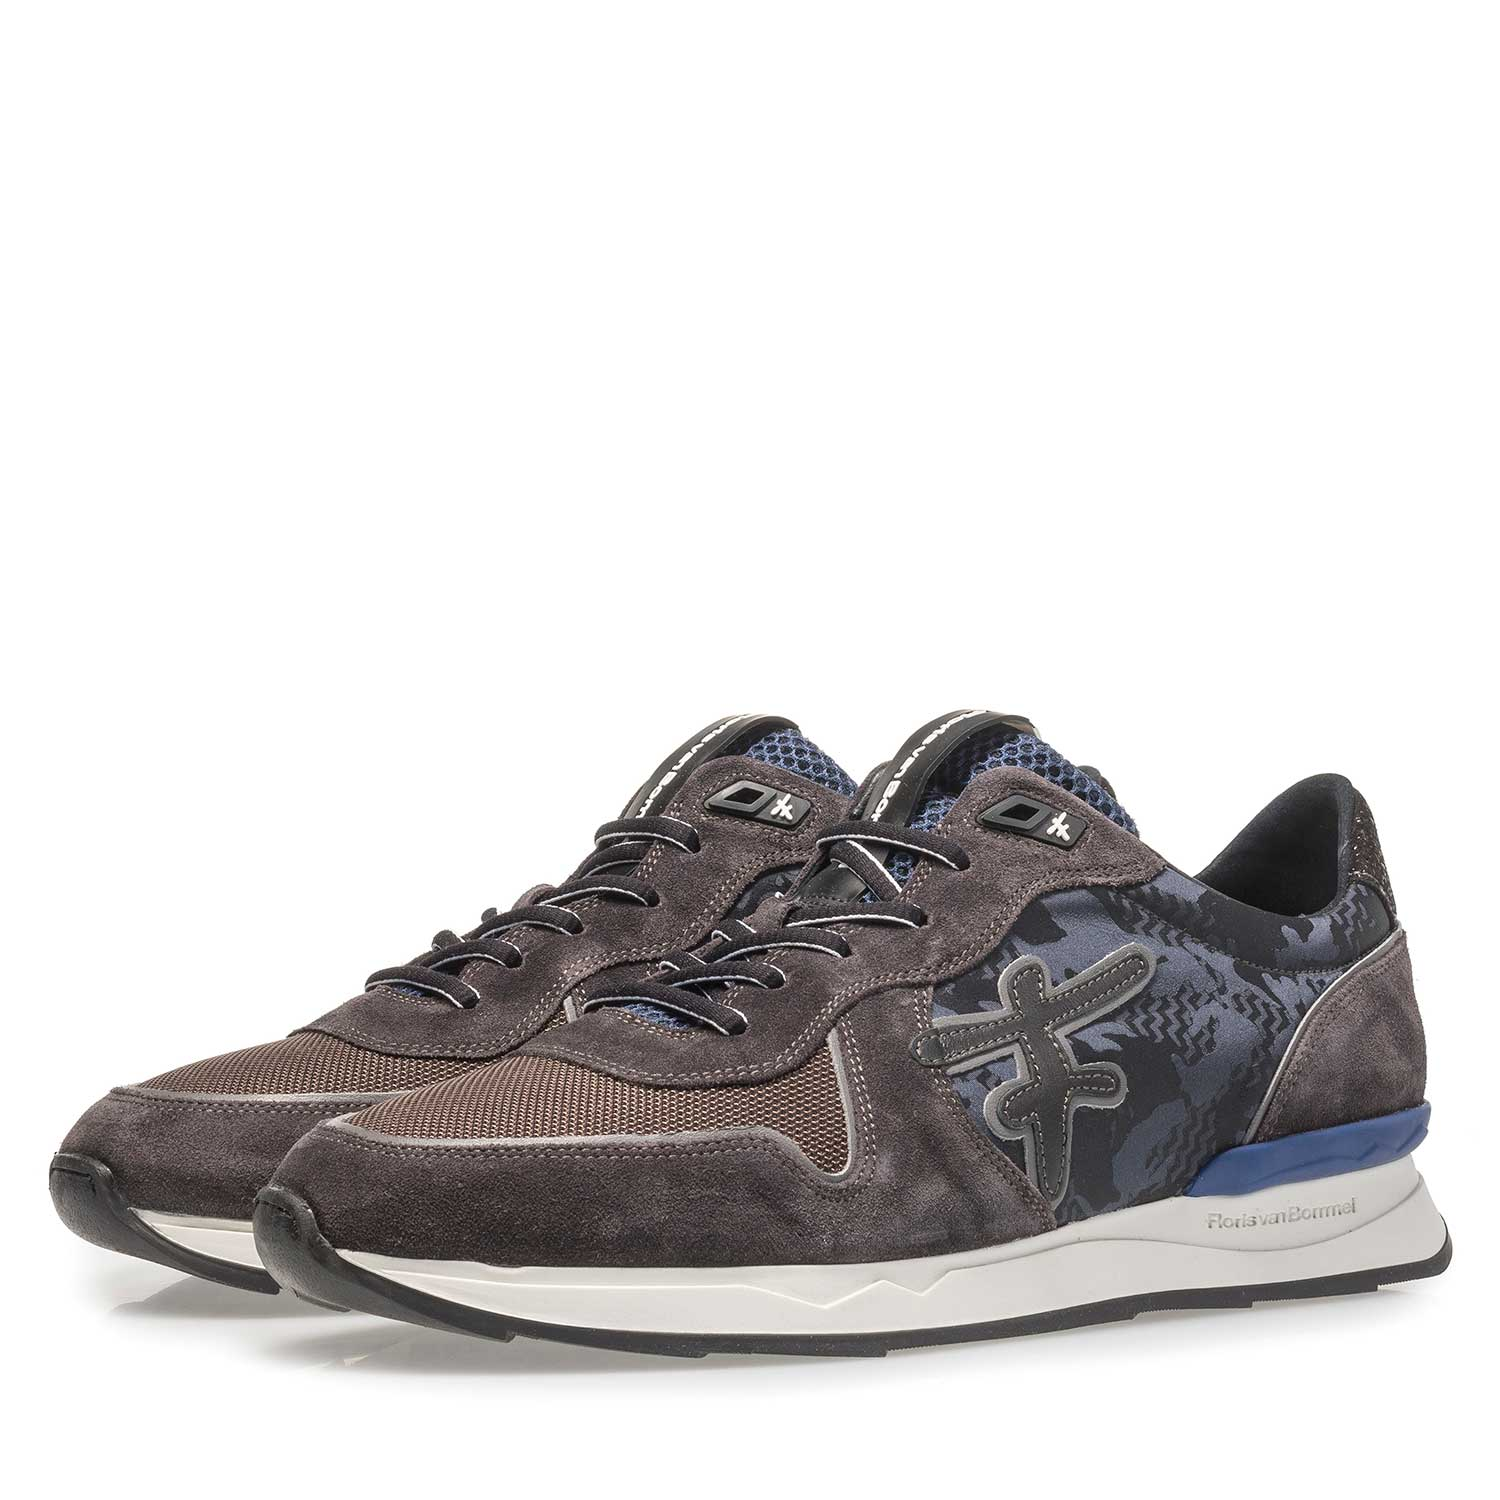 16246/22 - Dark grey printed suede leather sneaker